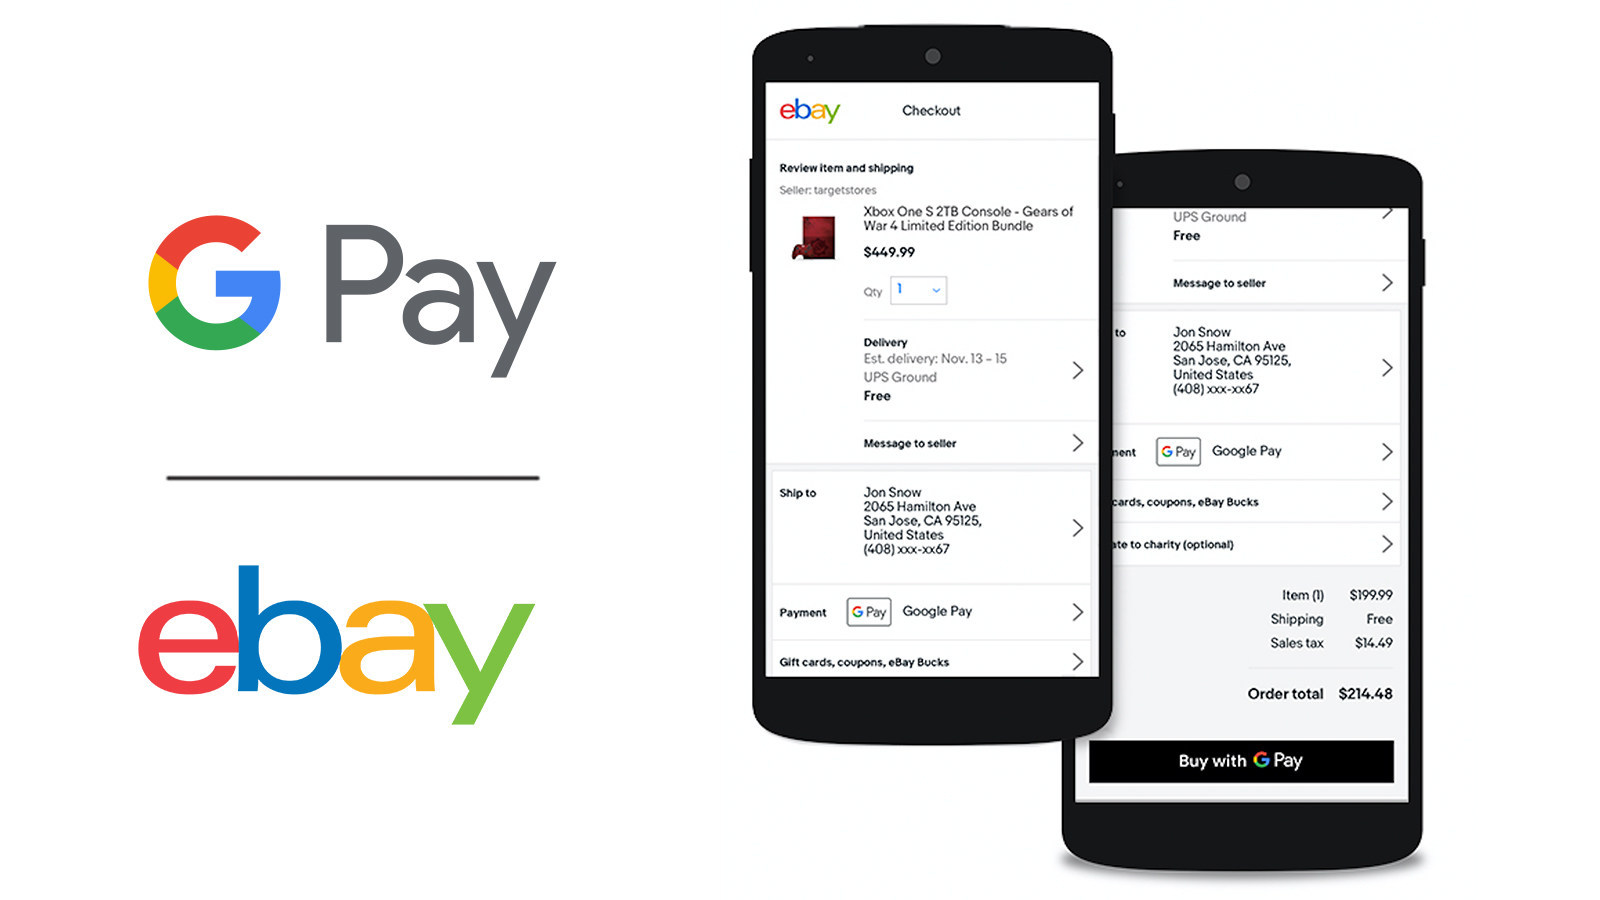 Google Pay becomes new payment option on eBay | Mobile Payments Today